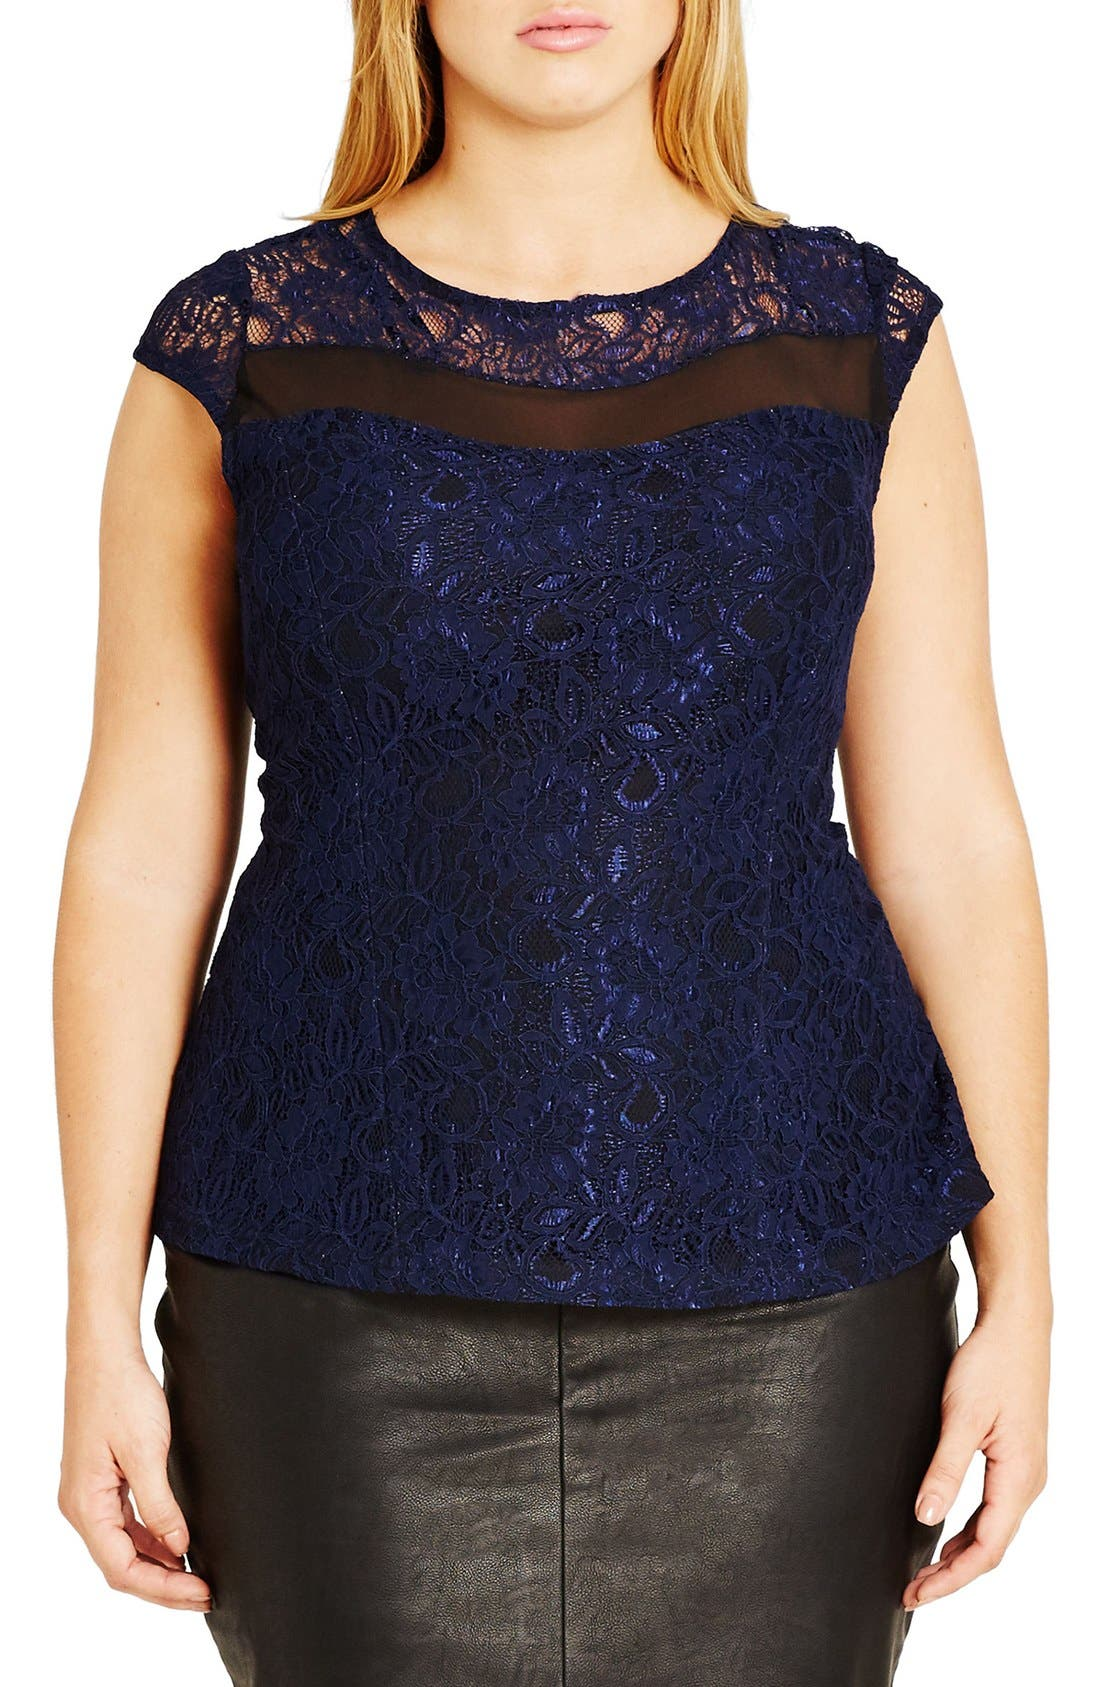 City Chic 'Mysterious' Cap Sleeve Lace Top (Plus Size)